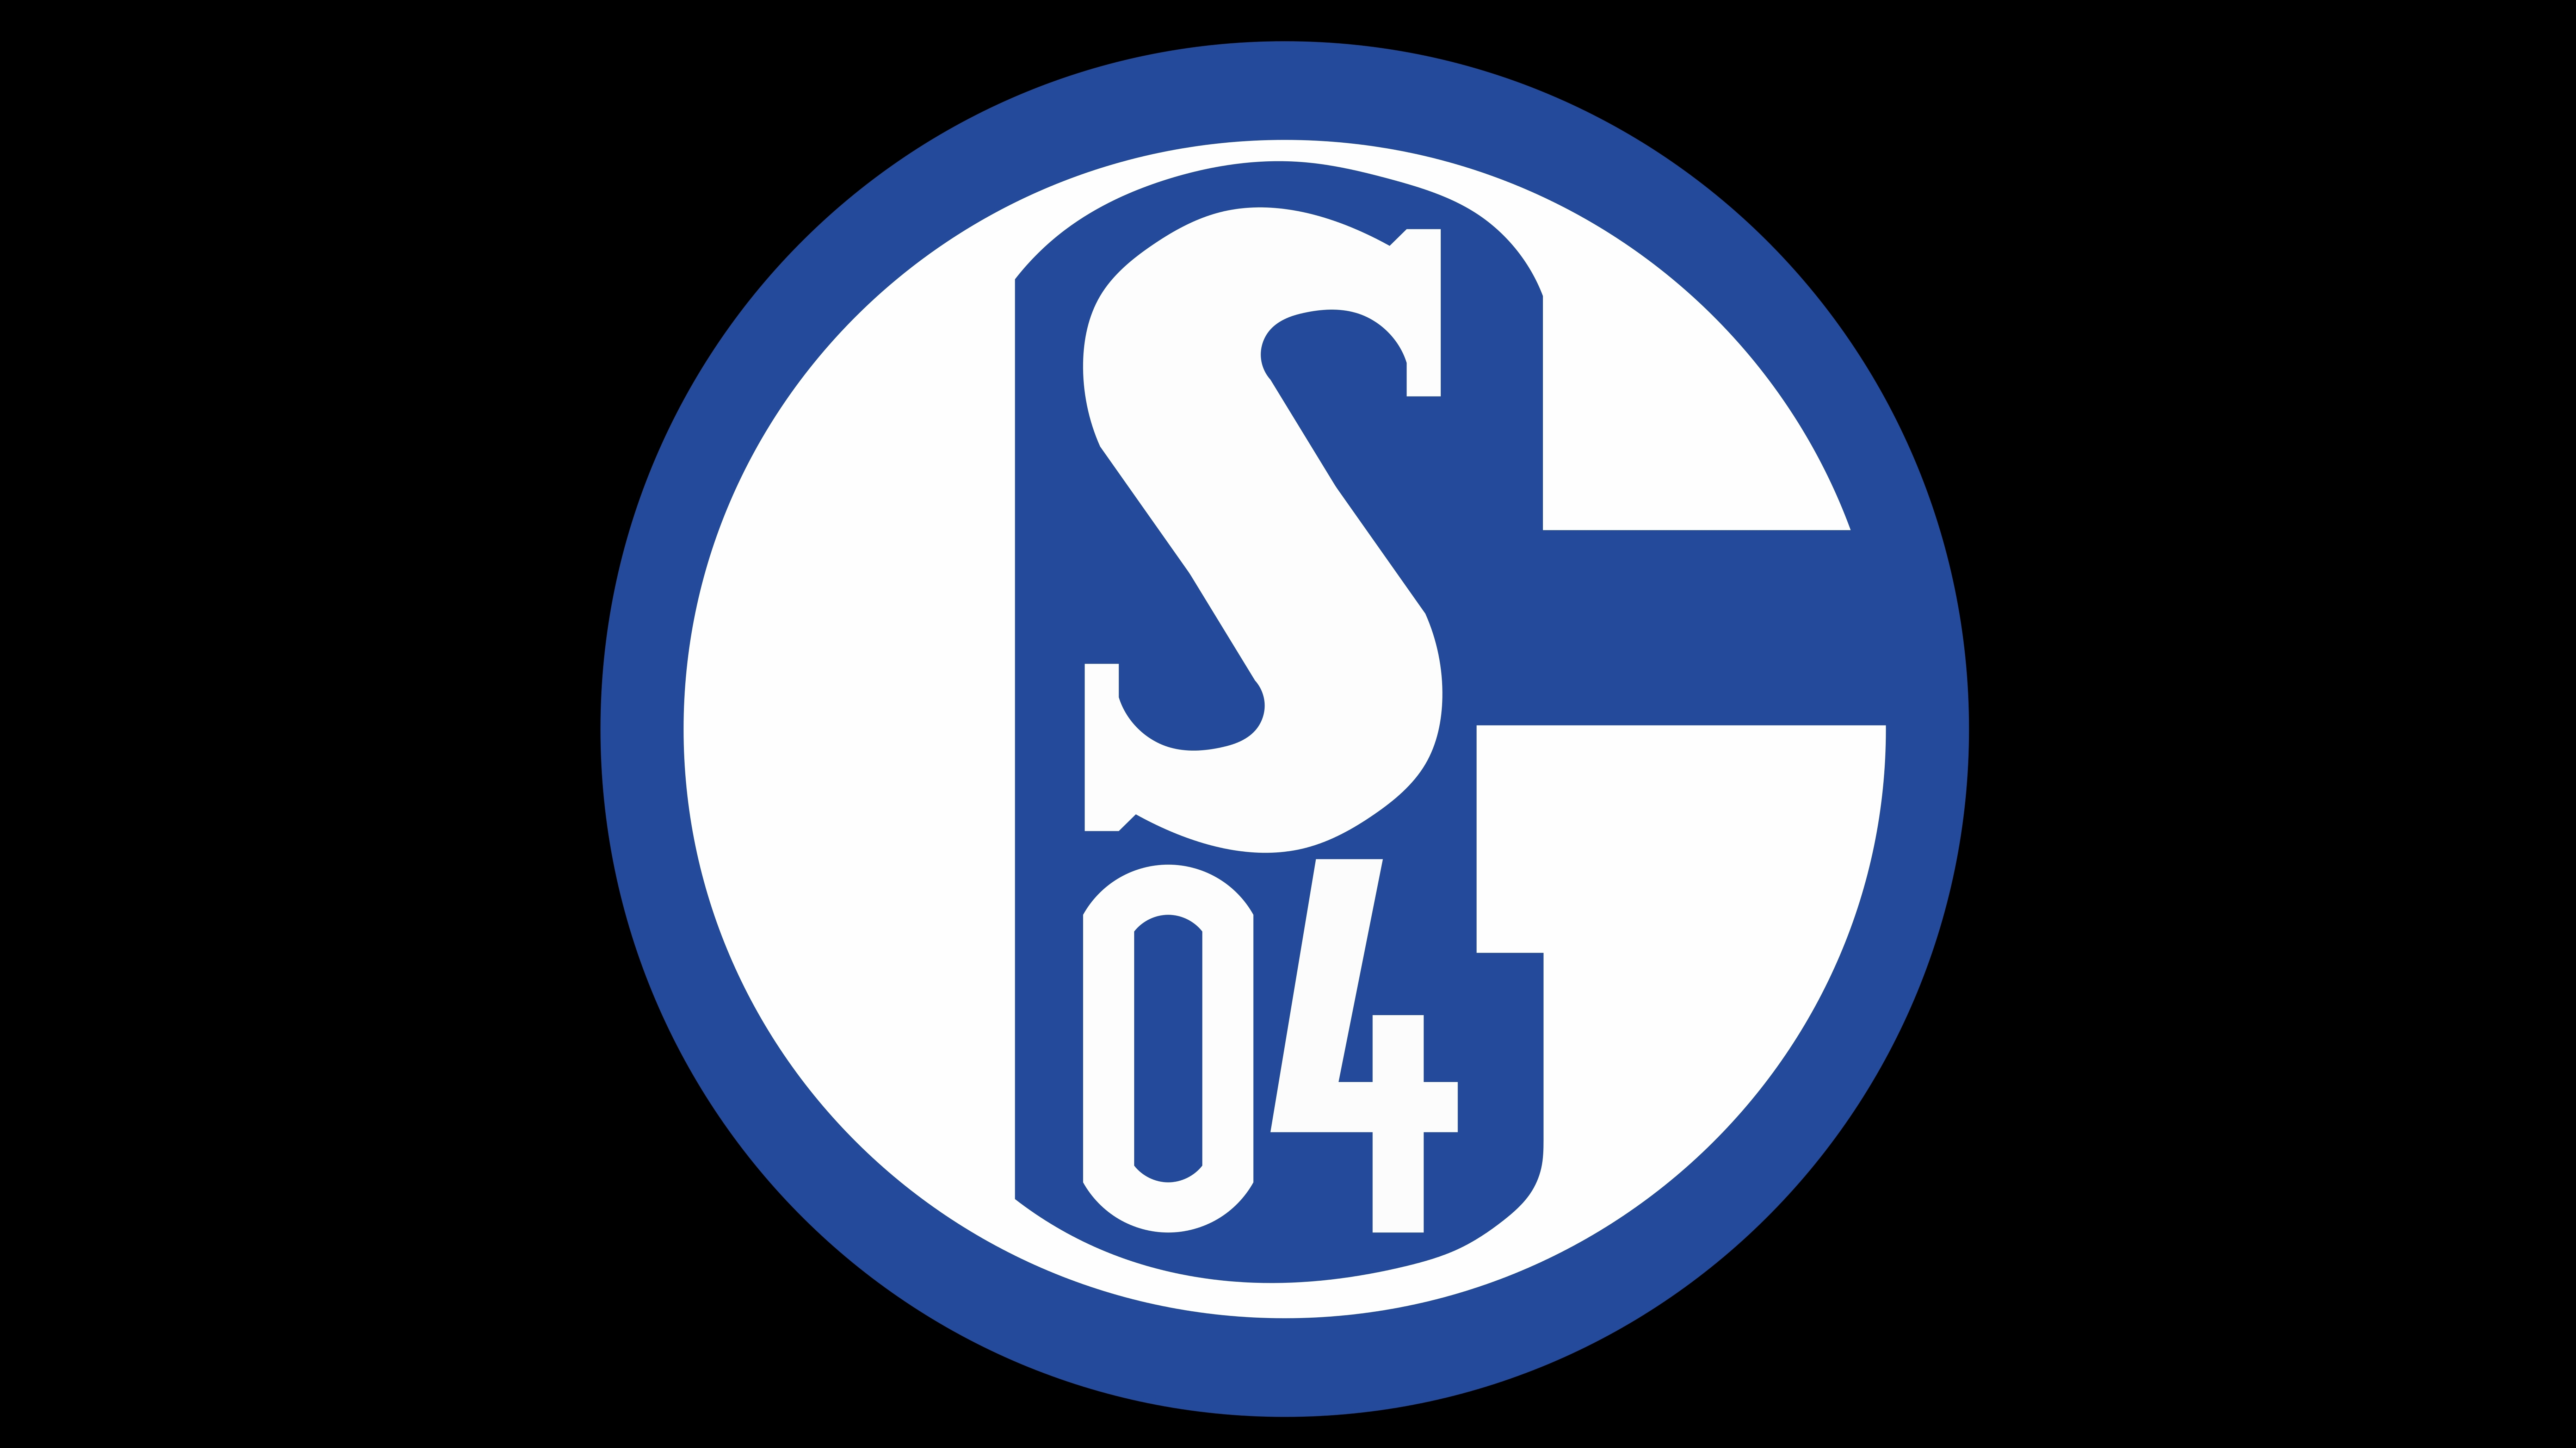 Wallpaper Of Soccer Quotes 1 Fc Schalke 04 Hd Wallpapers Backgrounds Wallpaper Abyss